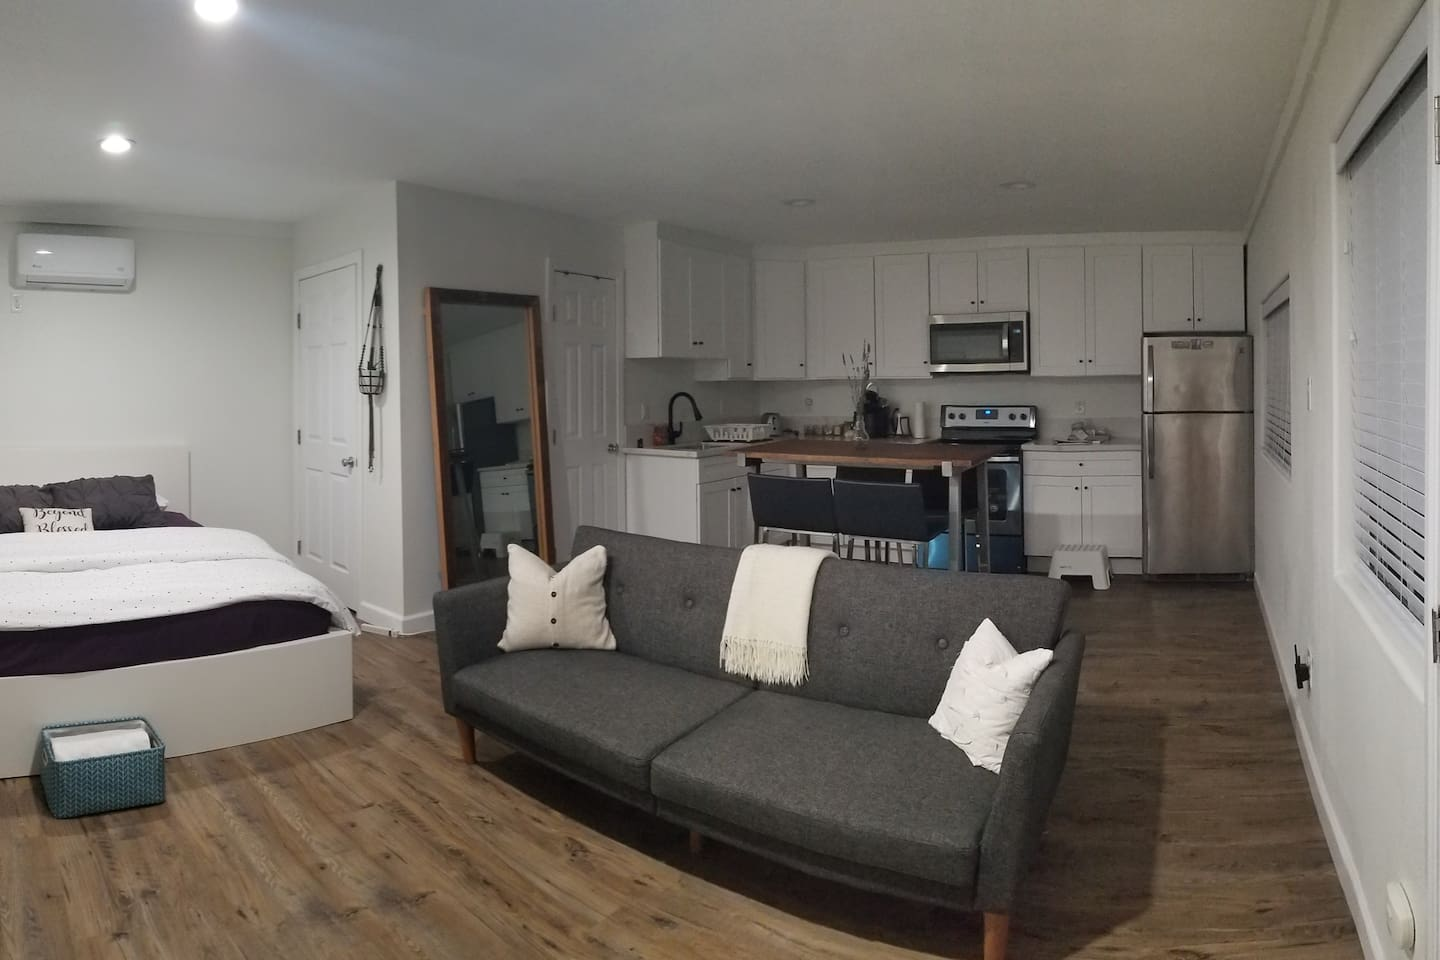 Private suite with own kitchen, bathroom, and living/bedroom space.